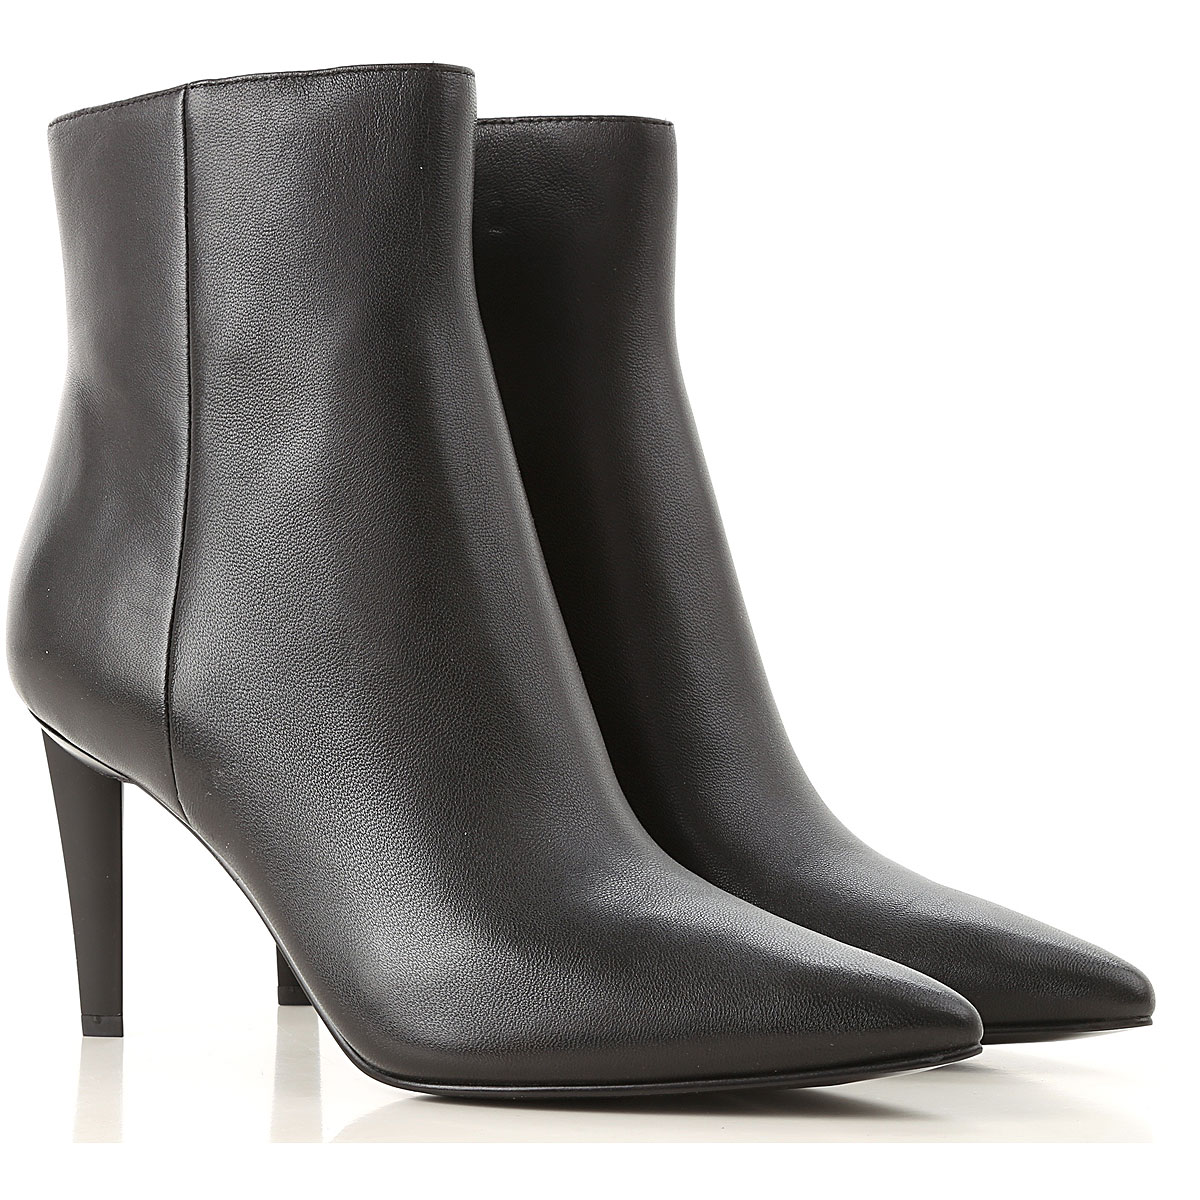 Kendall Kylie Boots for Women, Booties, Black, Leather, 2019, 6 7 9